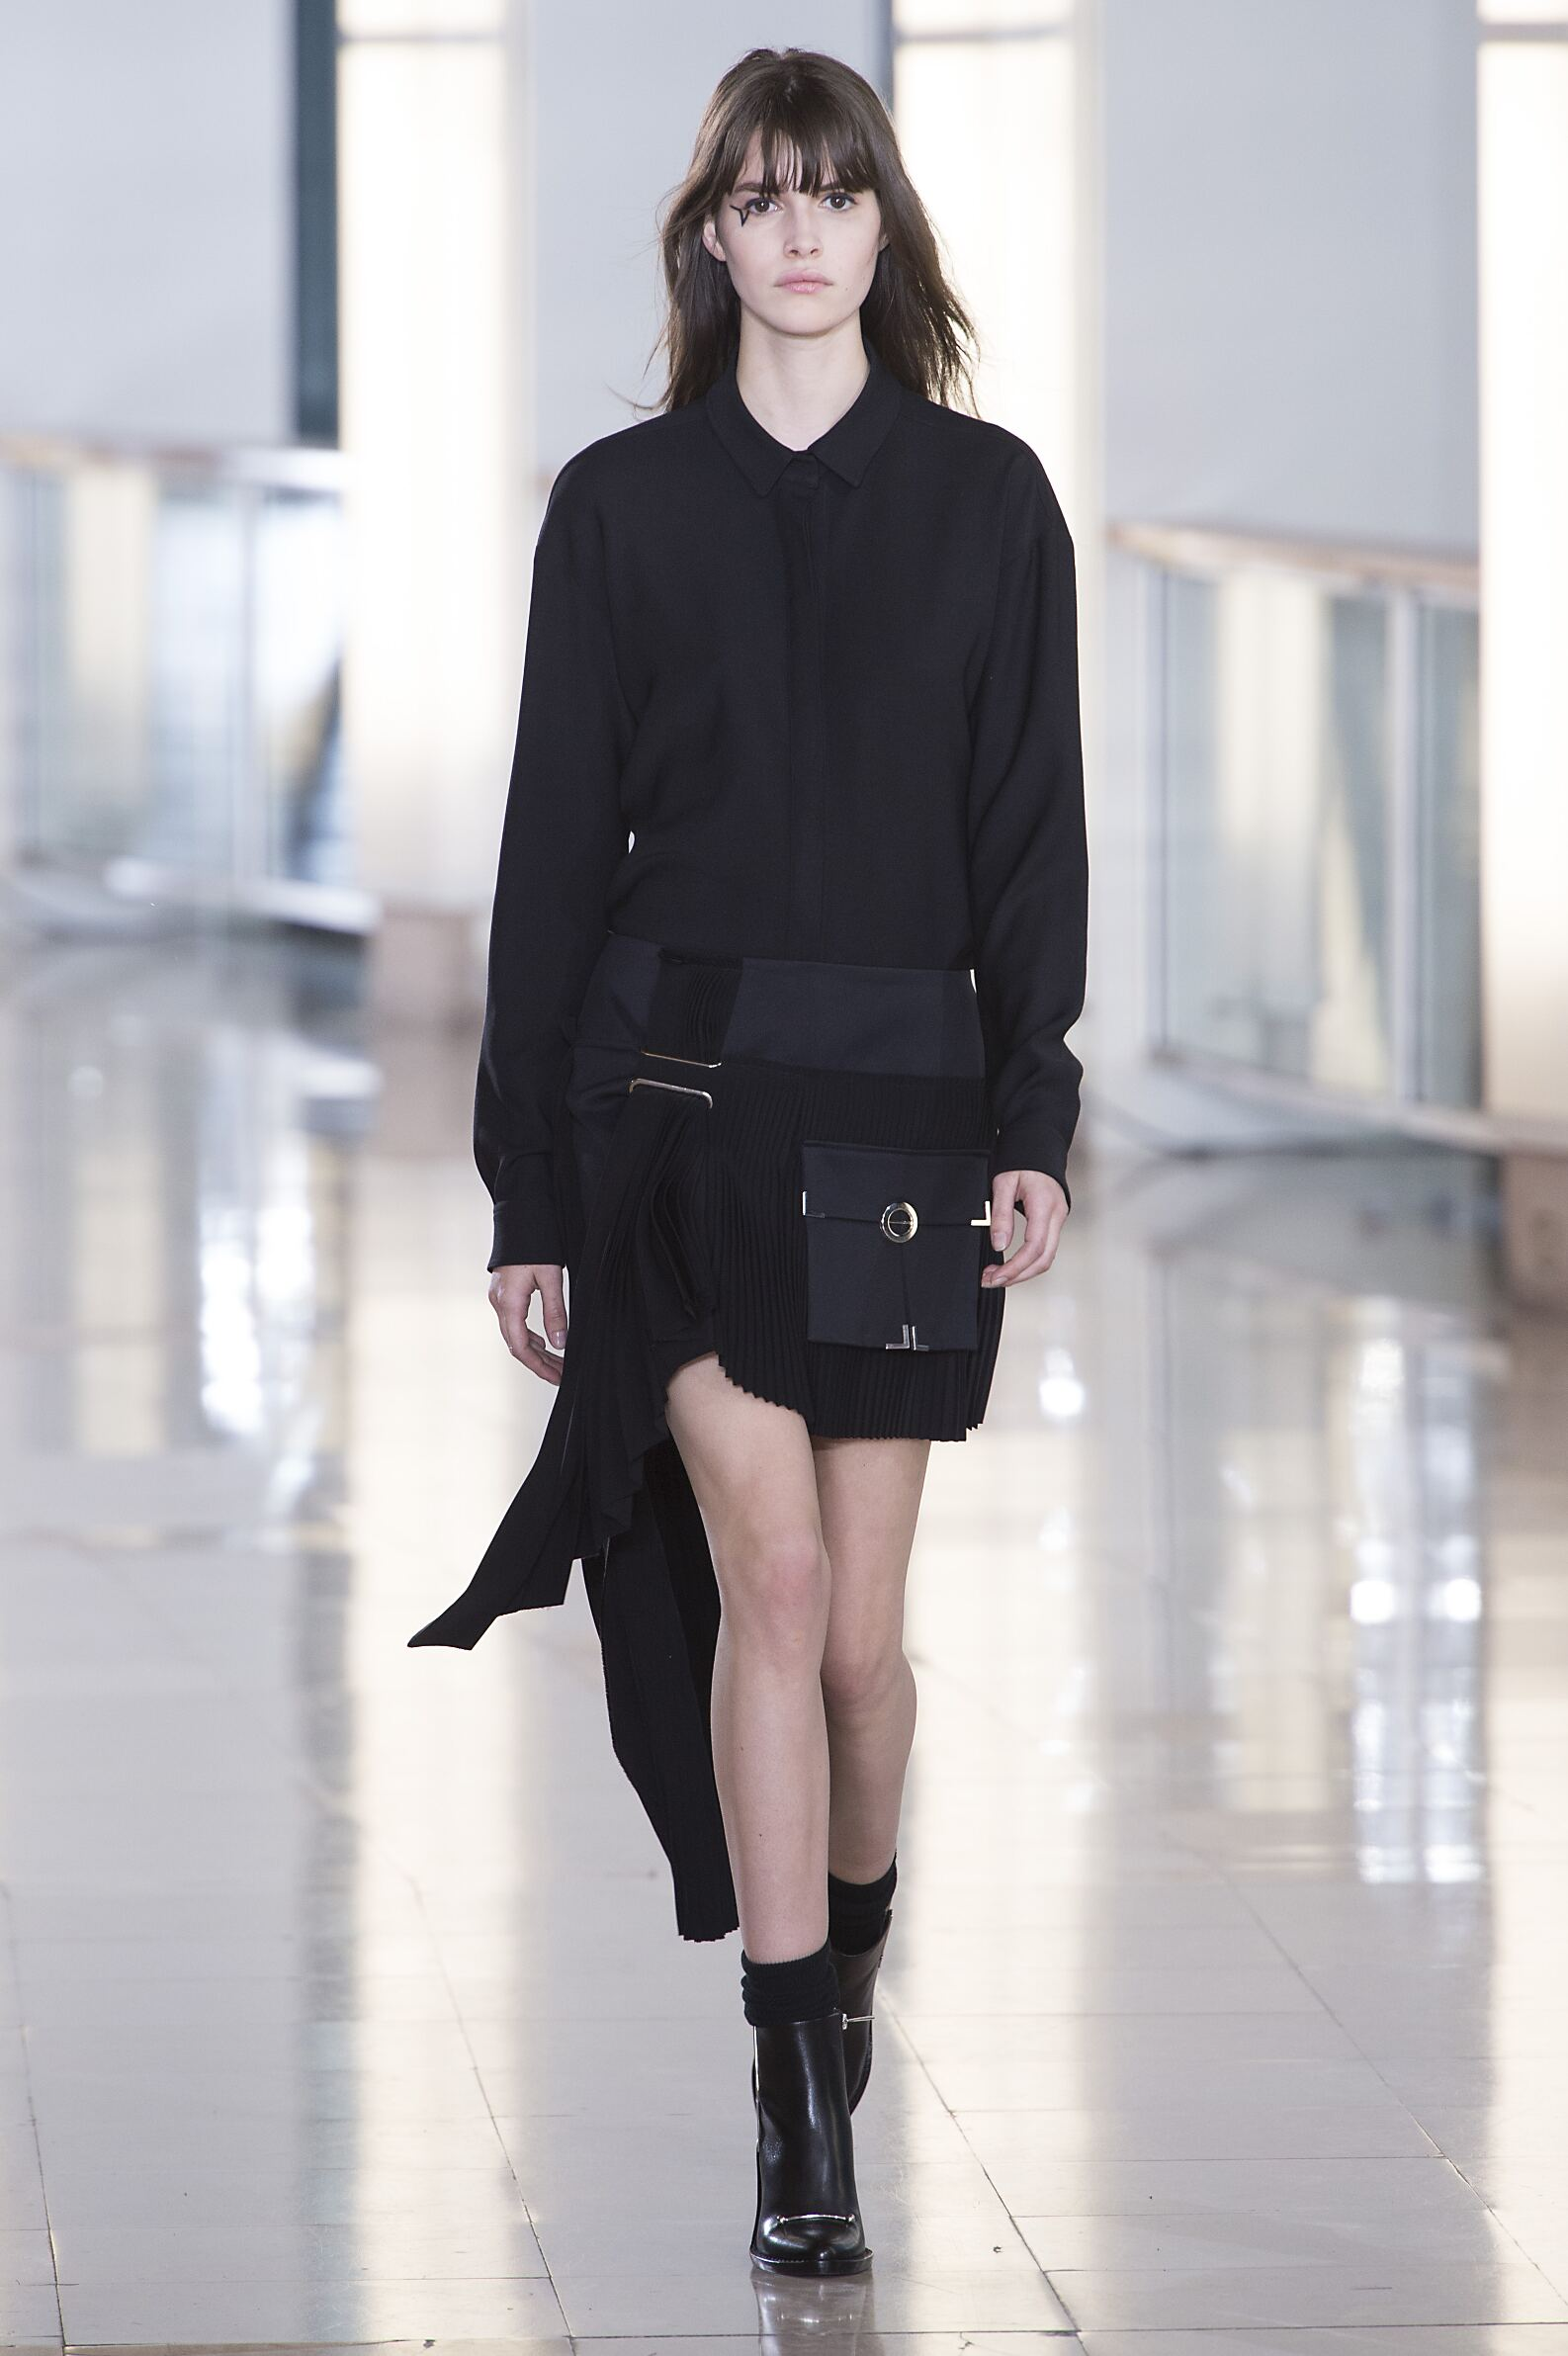 Anthony Vaccarello Fall Winter 2015 16 Womenswear Collection Paris Fashion Week Fashion Show